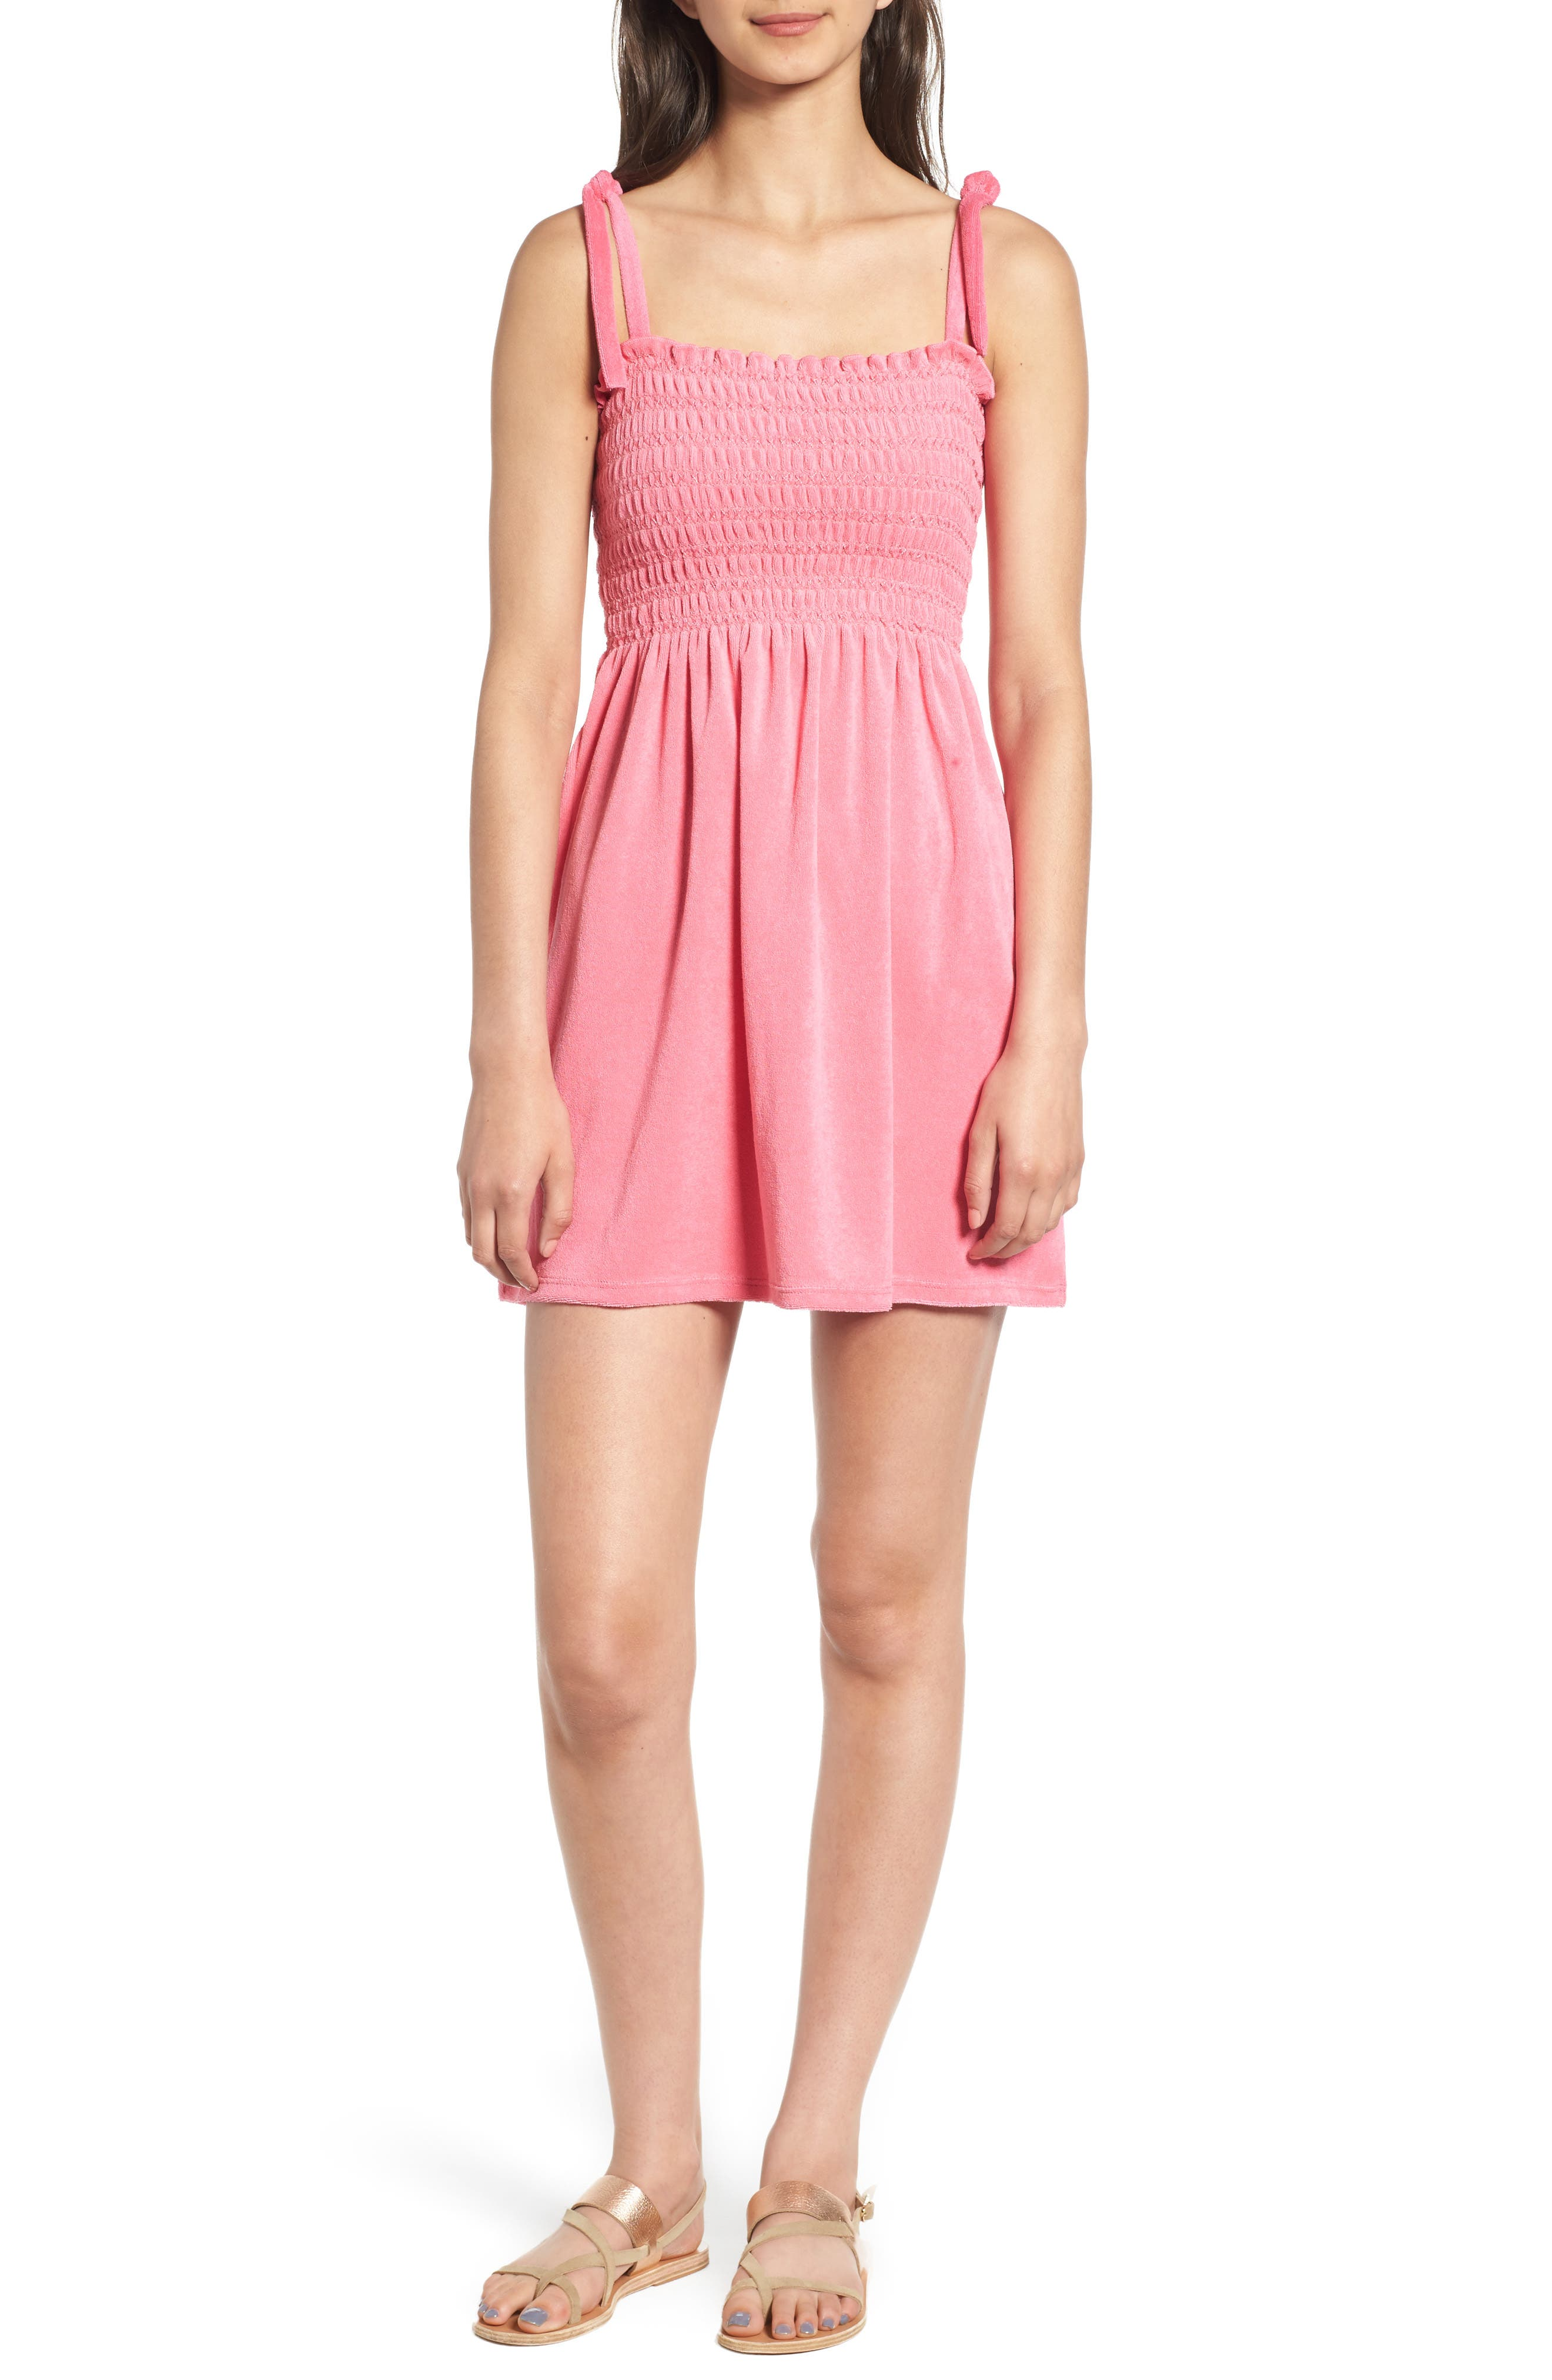 Venice Beach Microterry Smocked Dress,                         Main,                         color, Precocious Pink